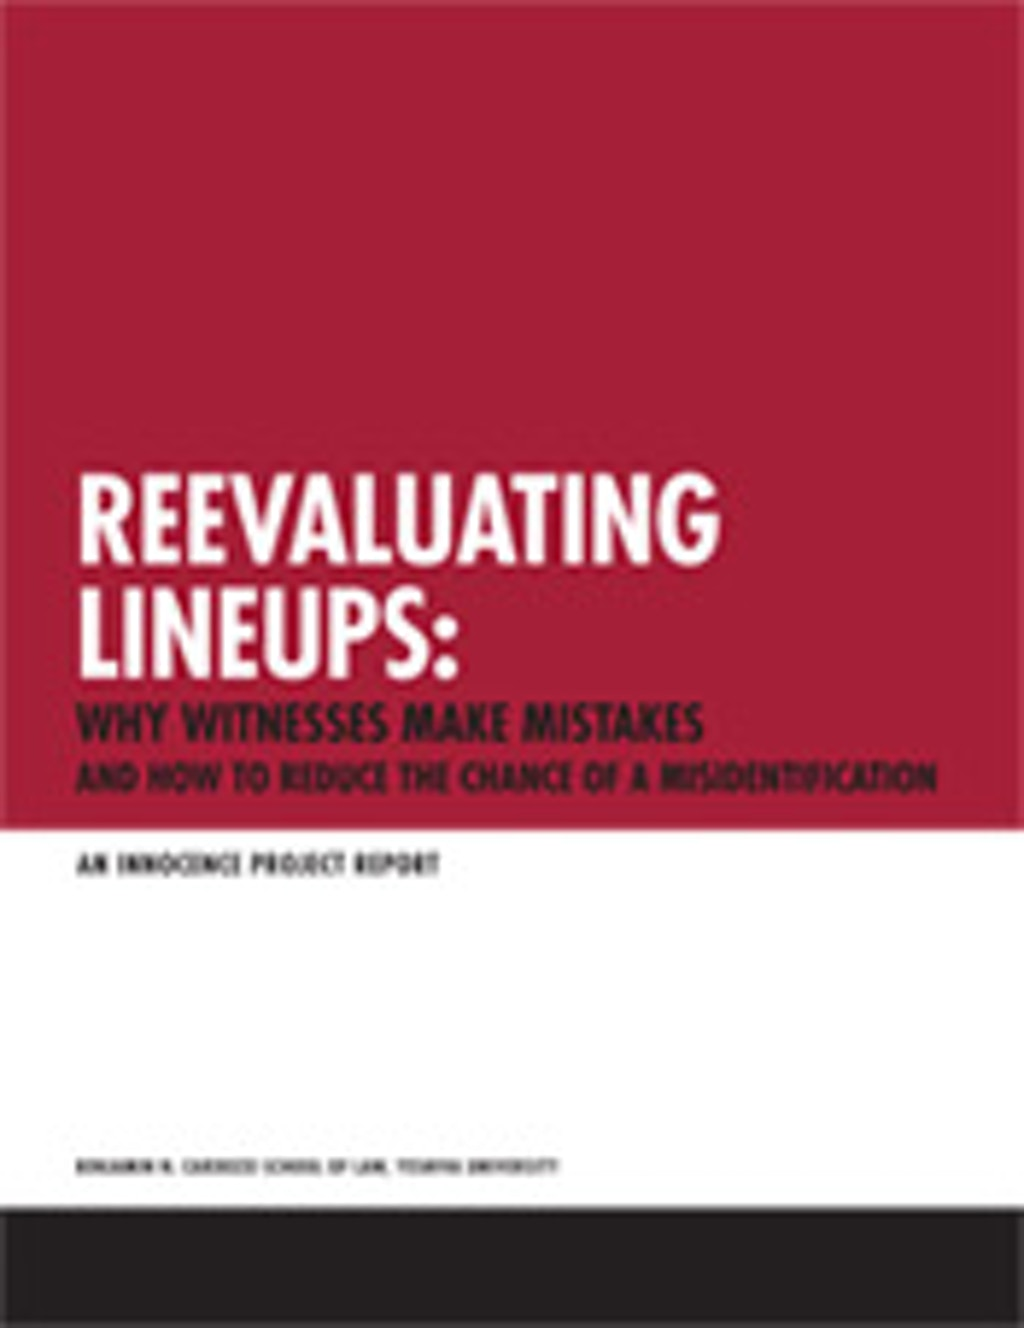 """NEW RESOURCES: """"Reevaluating Lineups: Why Witnesses Make Mistakes and How to Reduce the Chance of a Misidentification"""""""